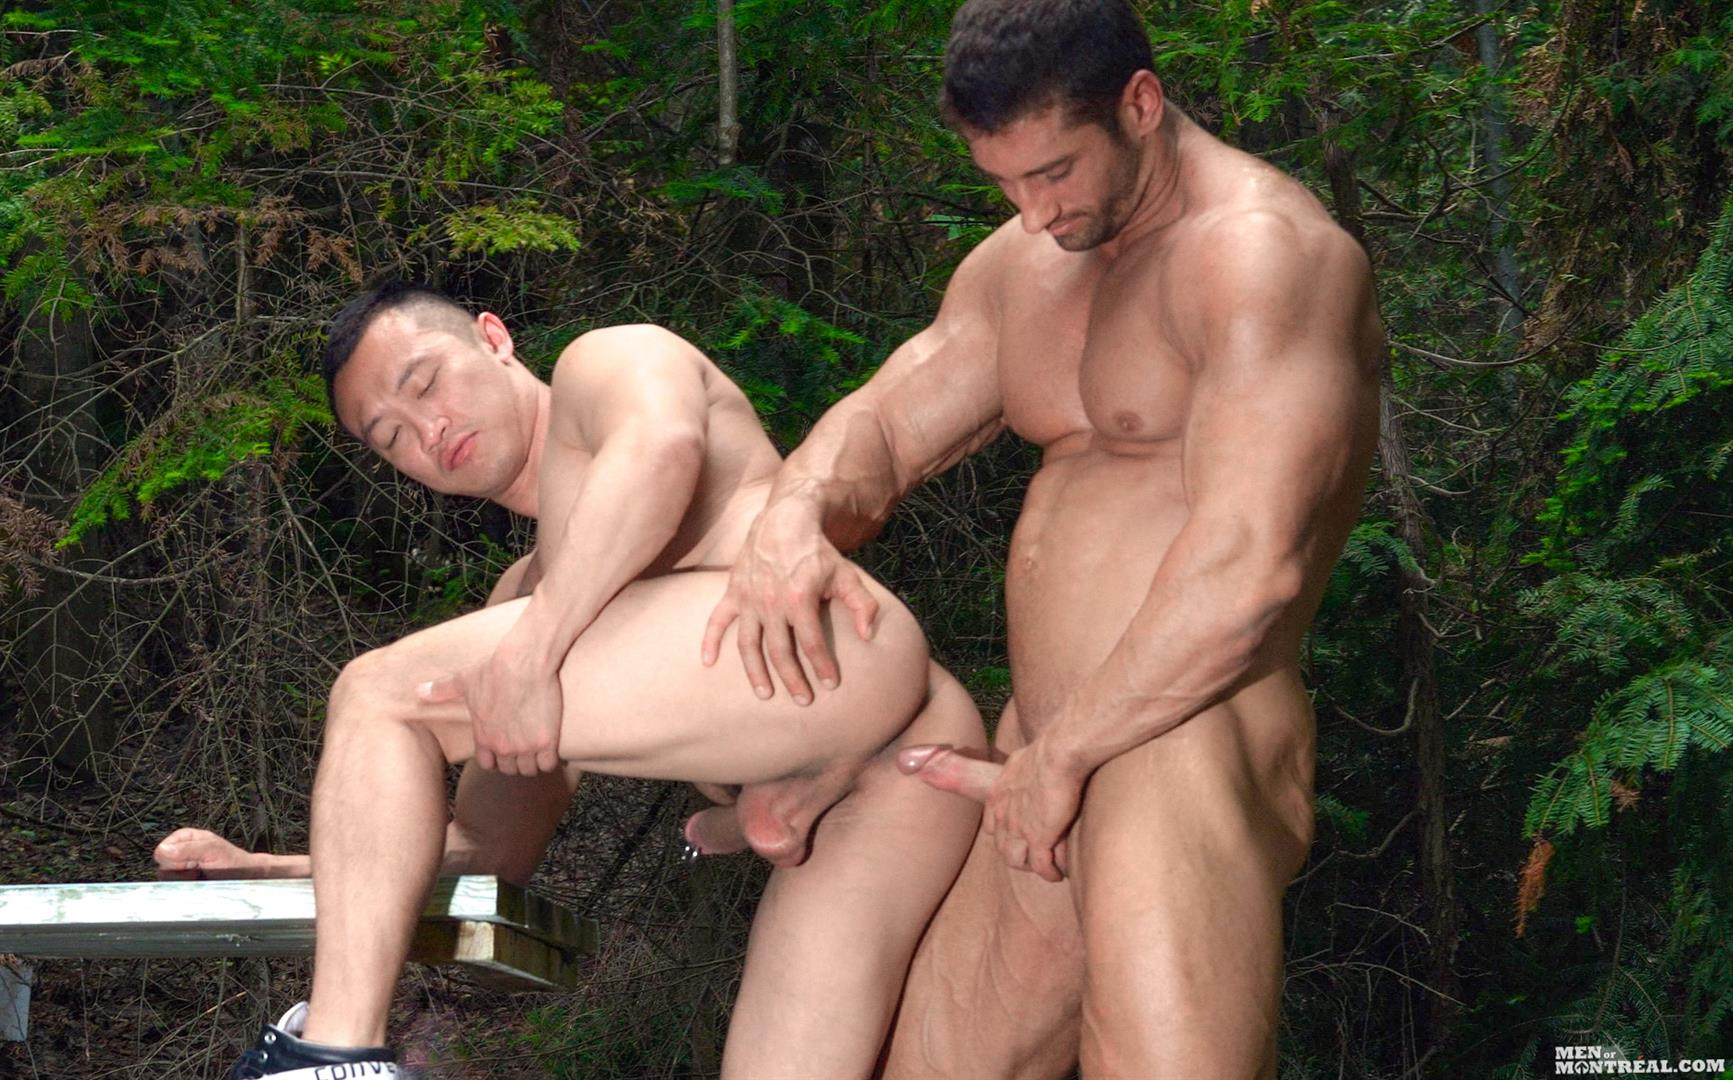 Men-of-Montreal-Archer-Quan-and-Christian-Power-Asian-Muscle-Man-Gets-Fucked-In-The-Ass-By-Hunk-Big-Asian-Cock-Amateur-Gay-Porn-13 Canadian Lumberjack Fucks A Muscle Asian Hunk In The Ass